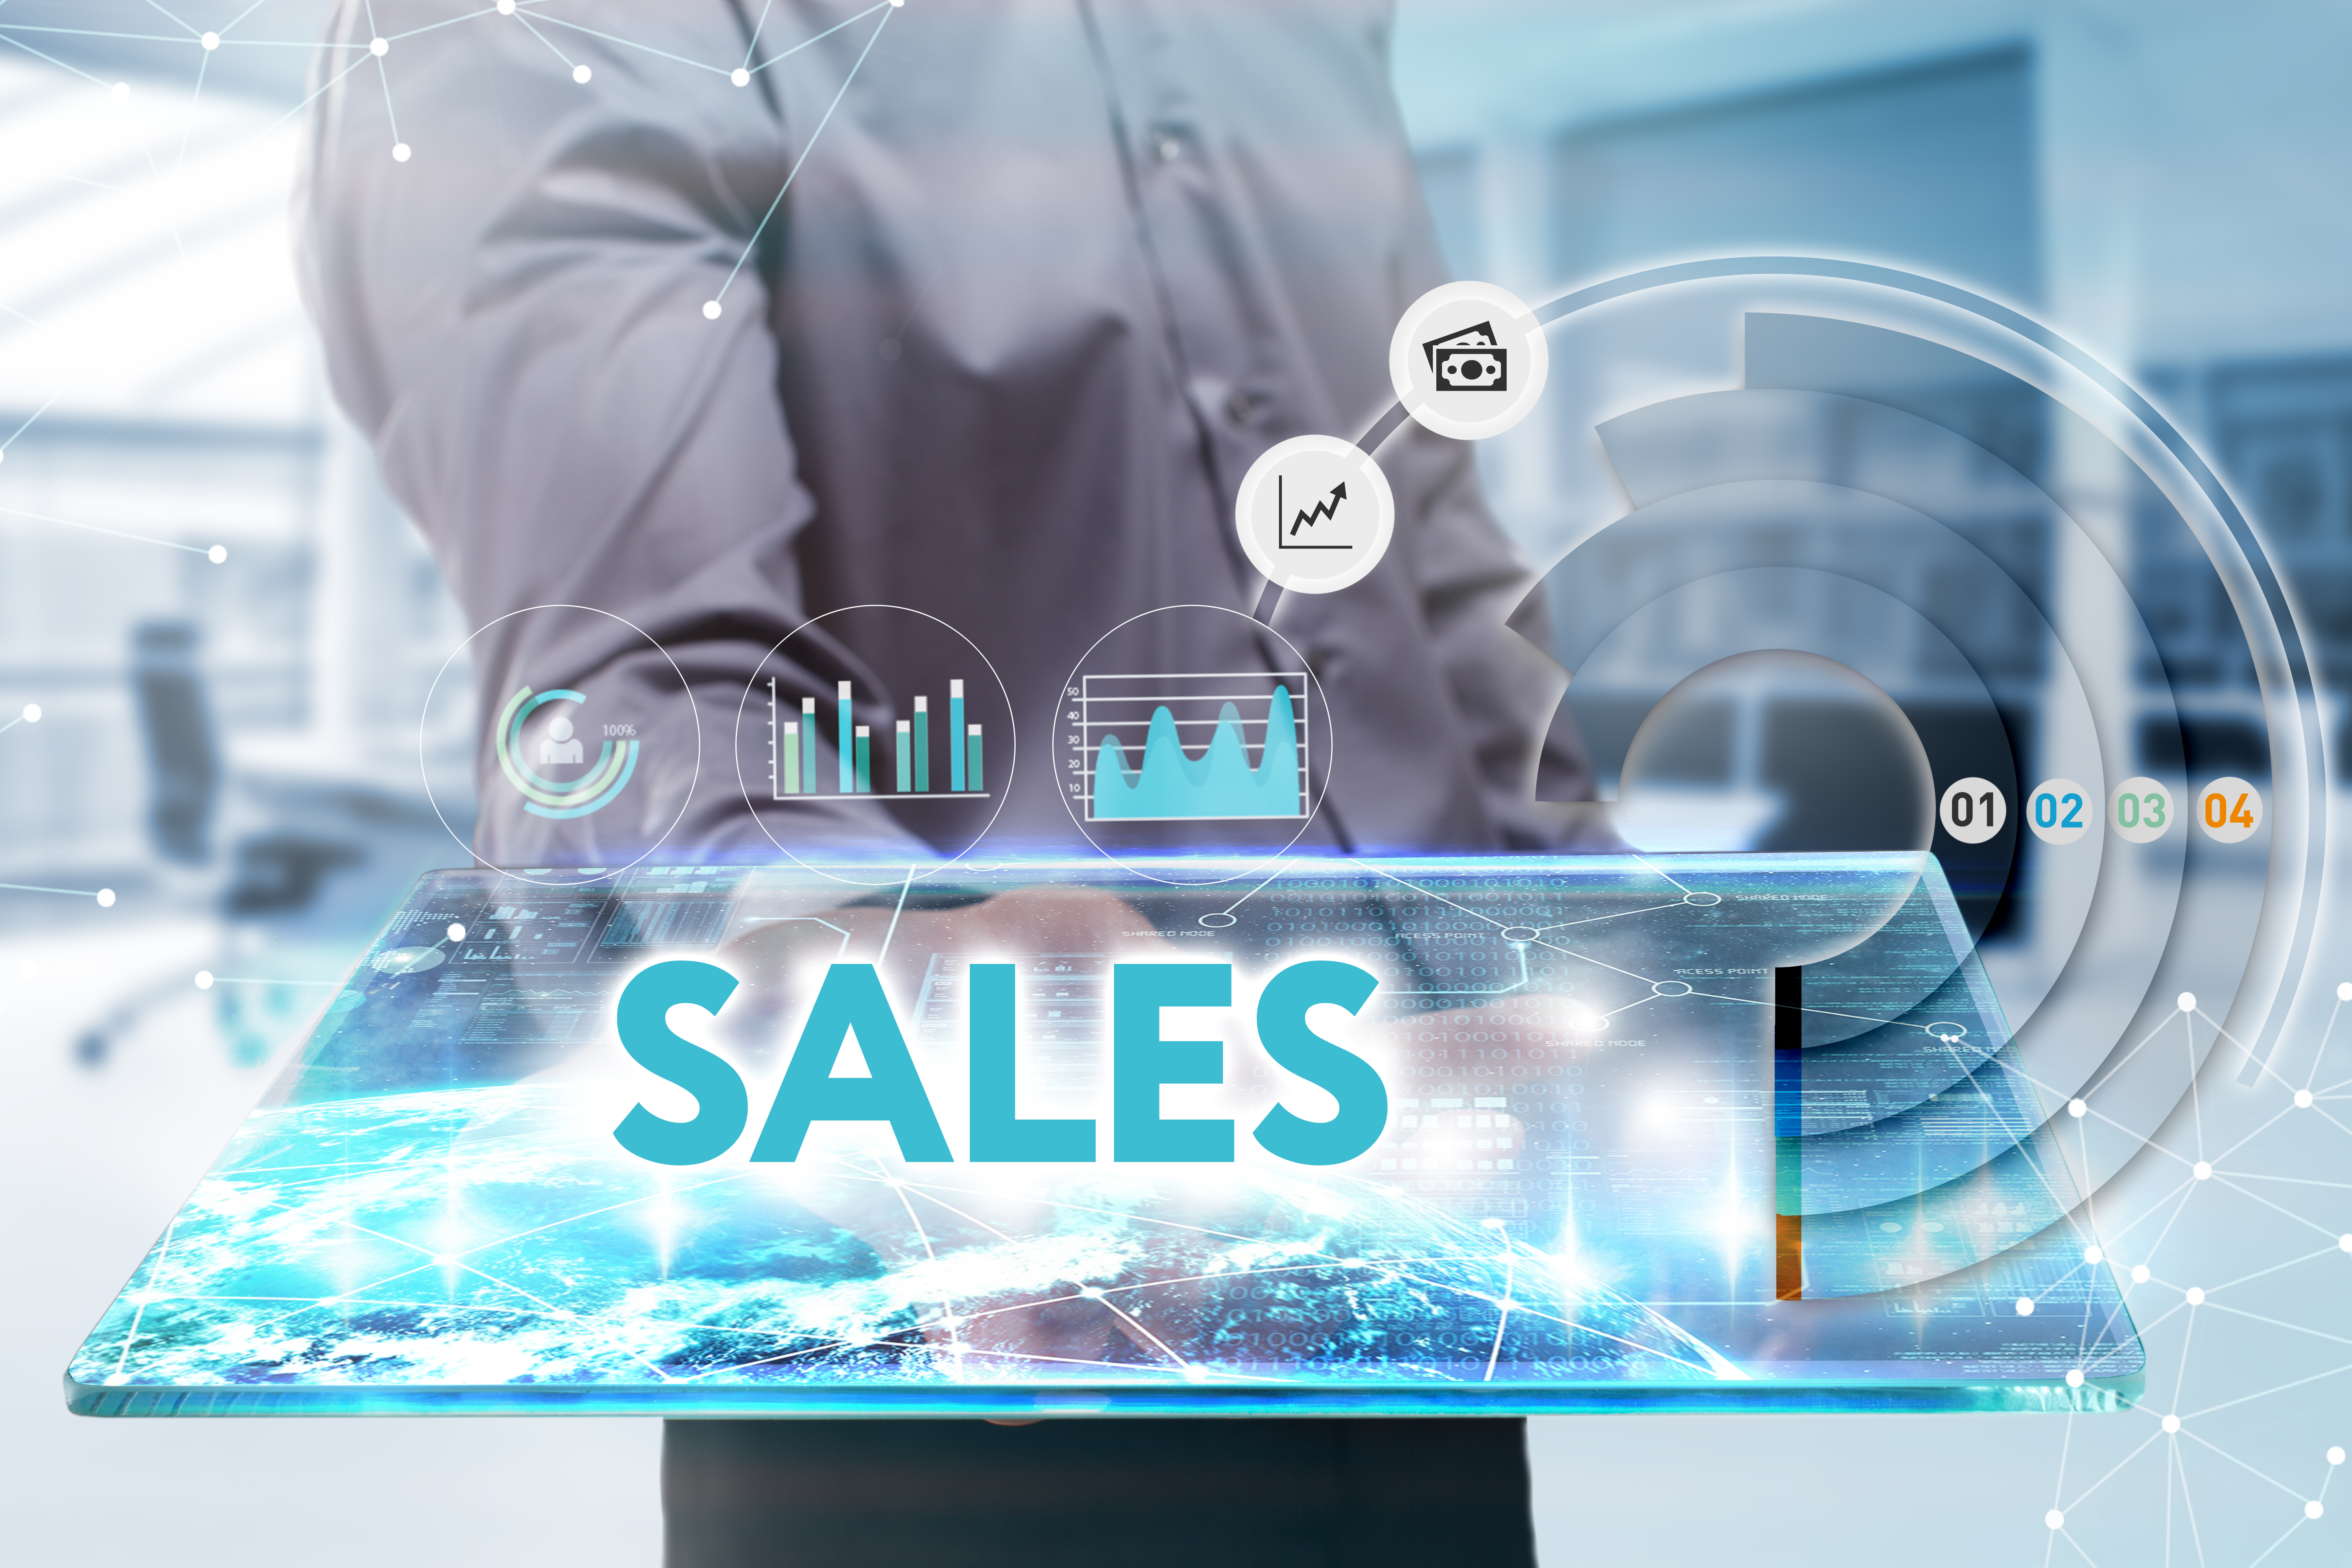 Image 6 ½ THINGS YOU CAN DO TO GET MORE SALES IN THE NEXT 60 MINUTES